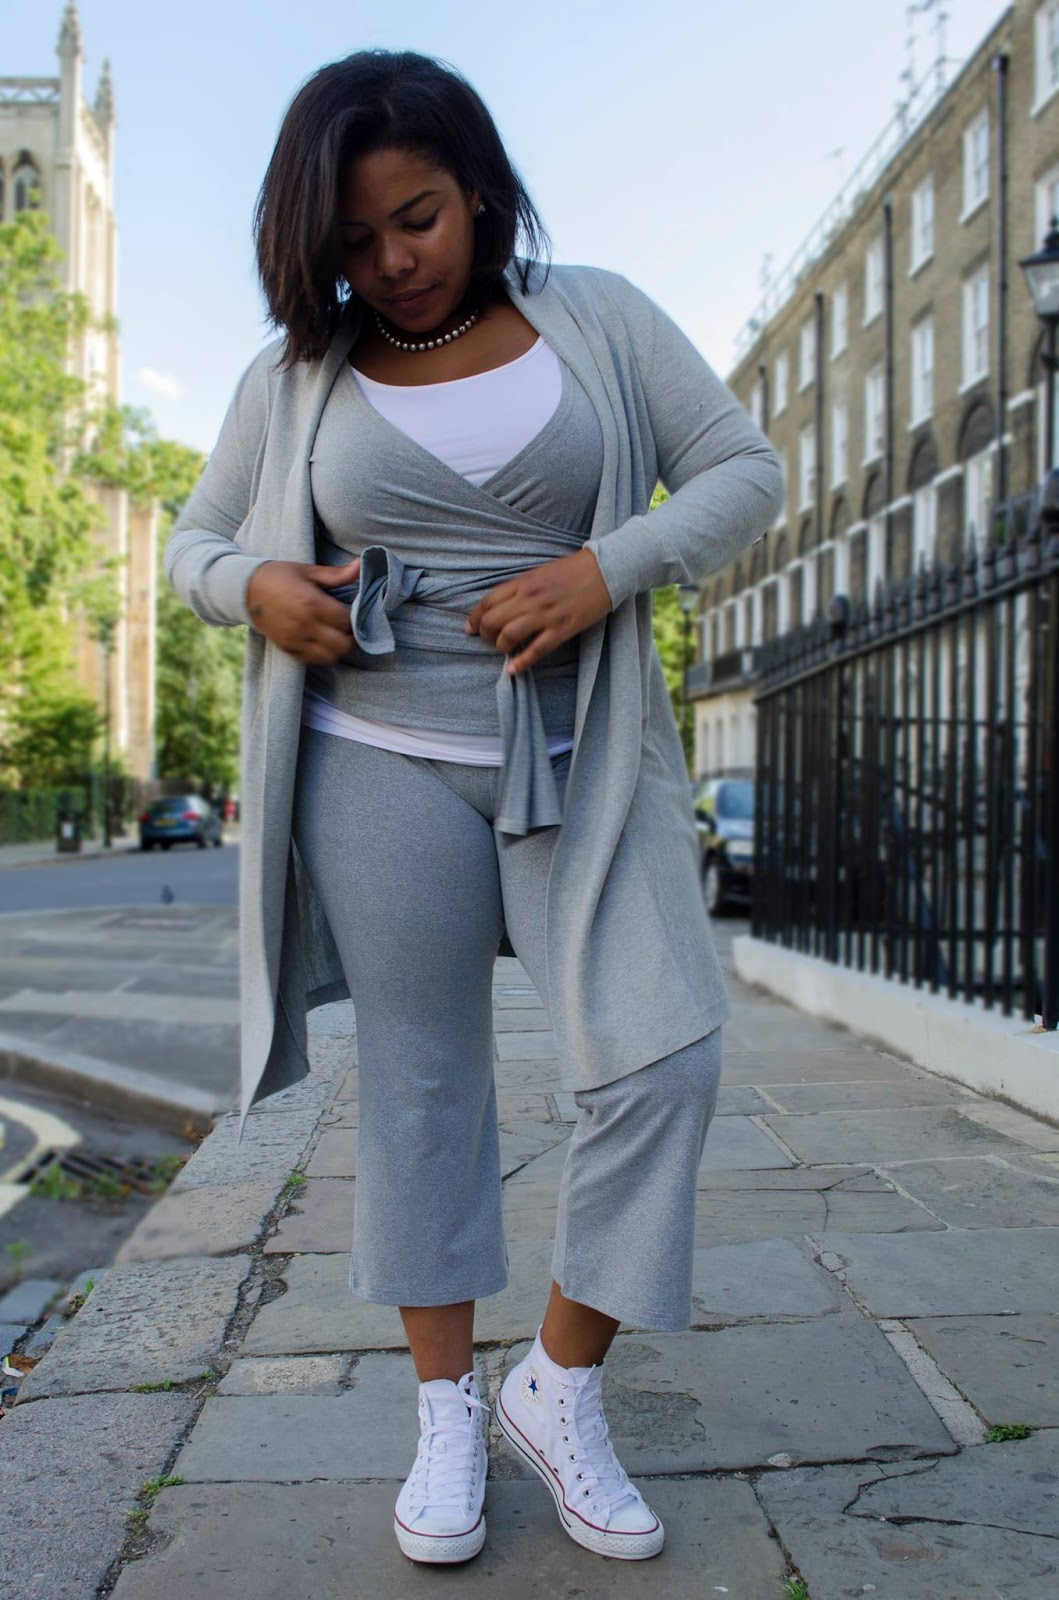 luxury plus size lounge wear - chloepierreldn